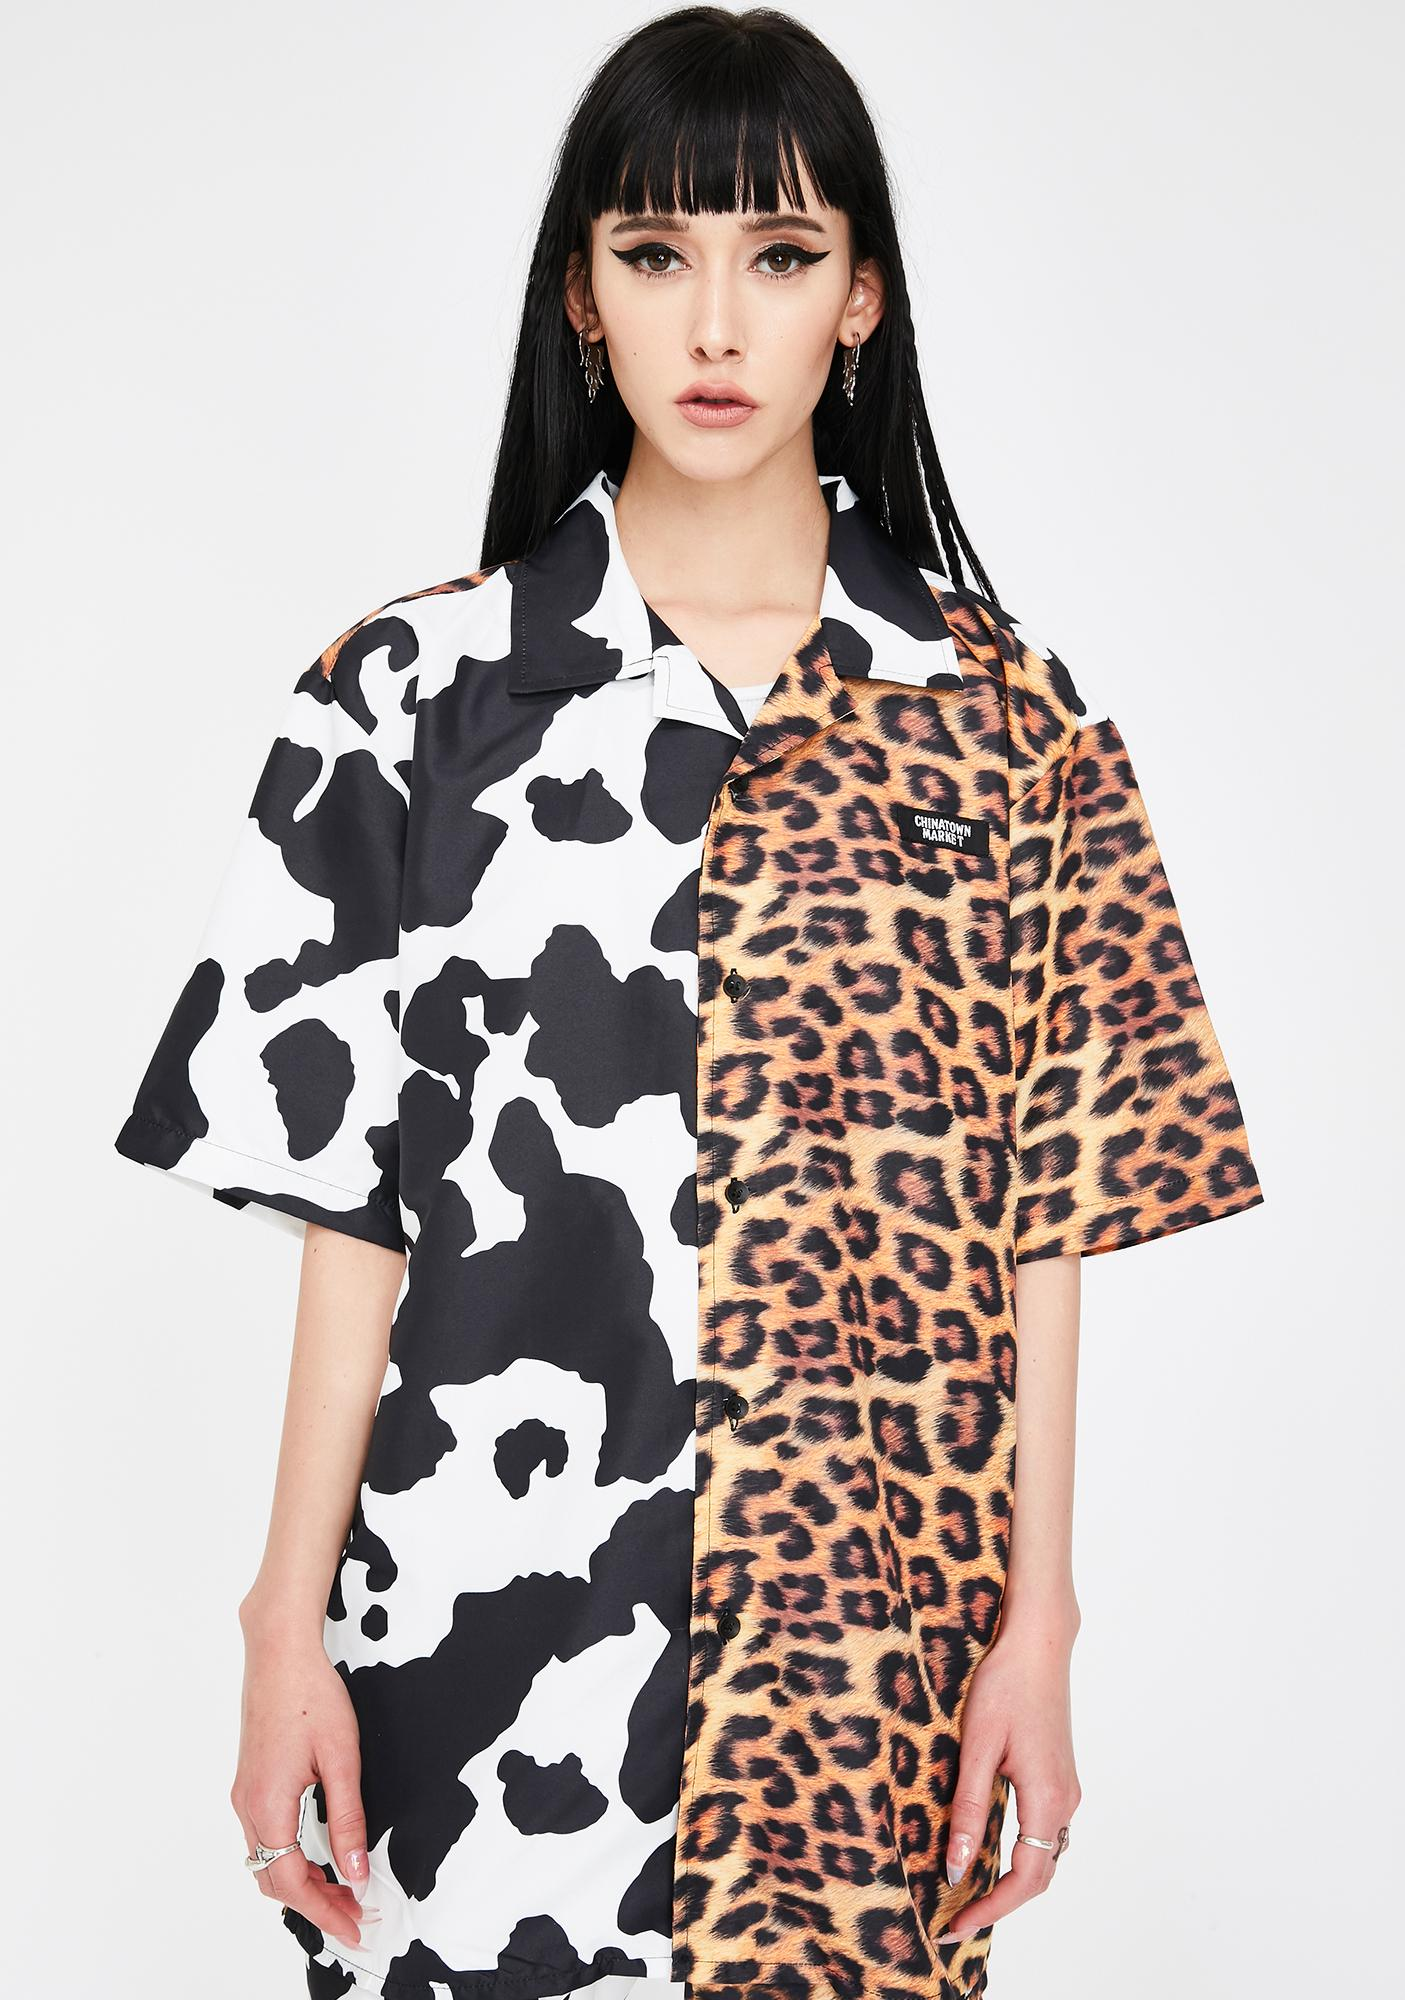 CHINATOWN MARKET All Over Animal Print Button Up Shirt